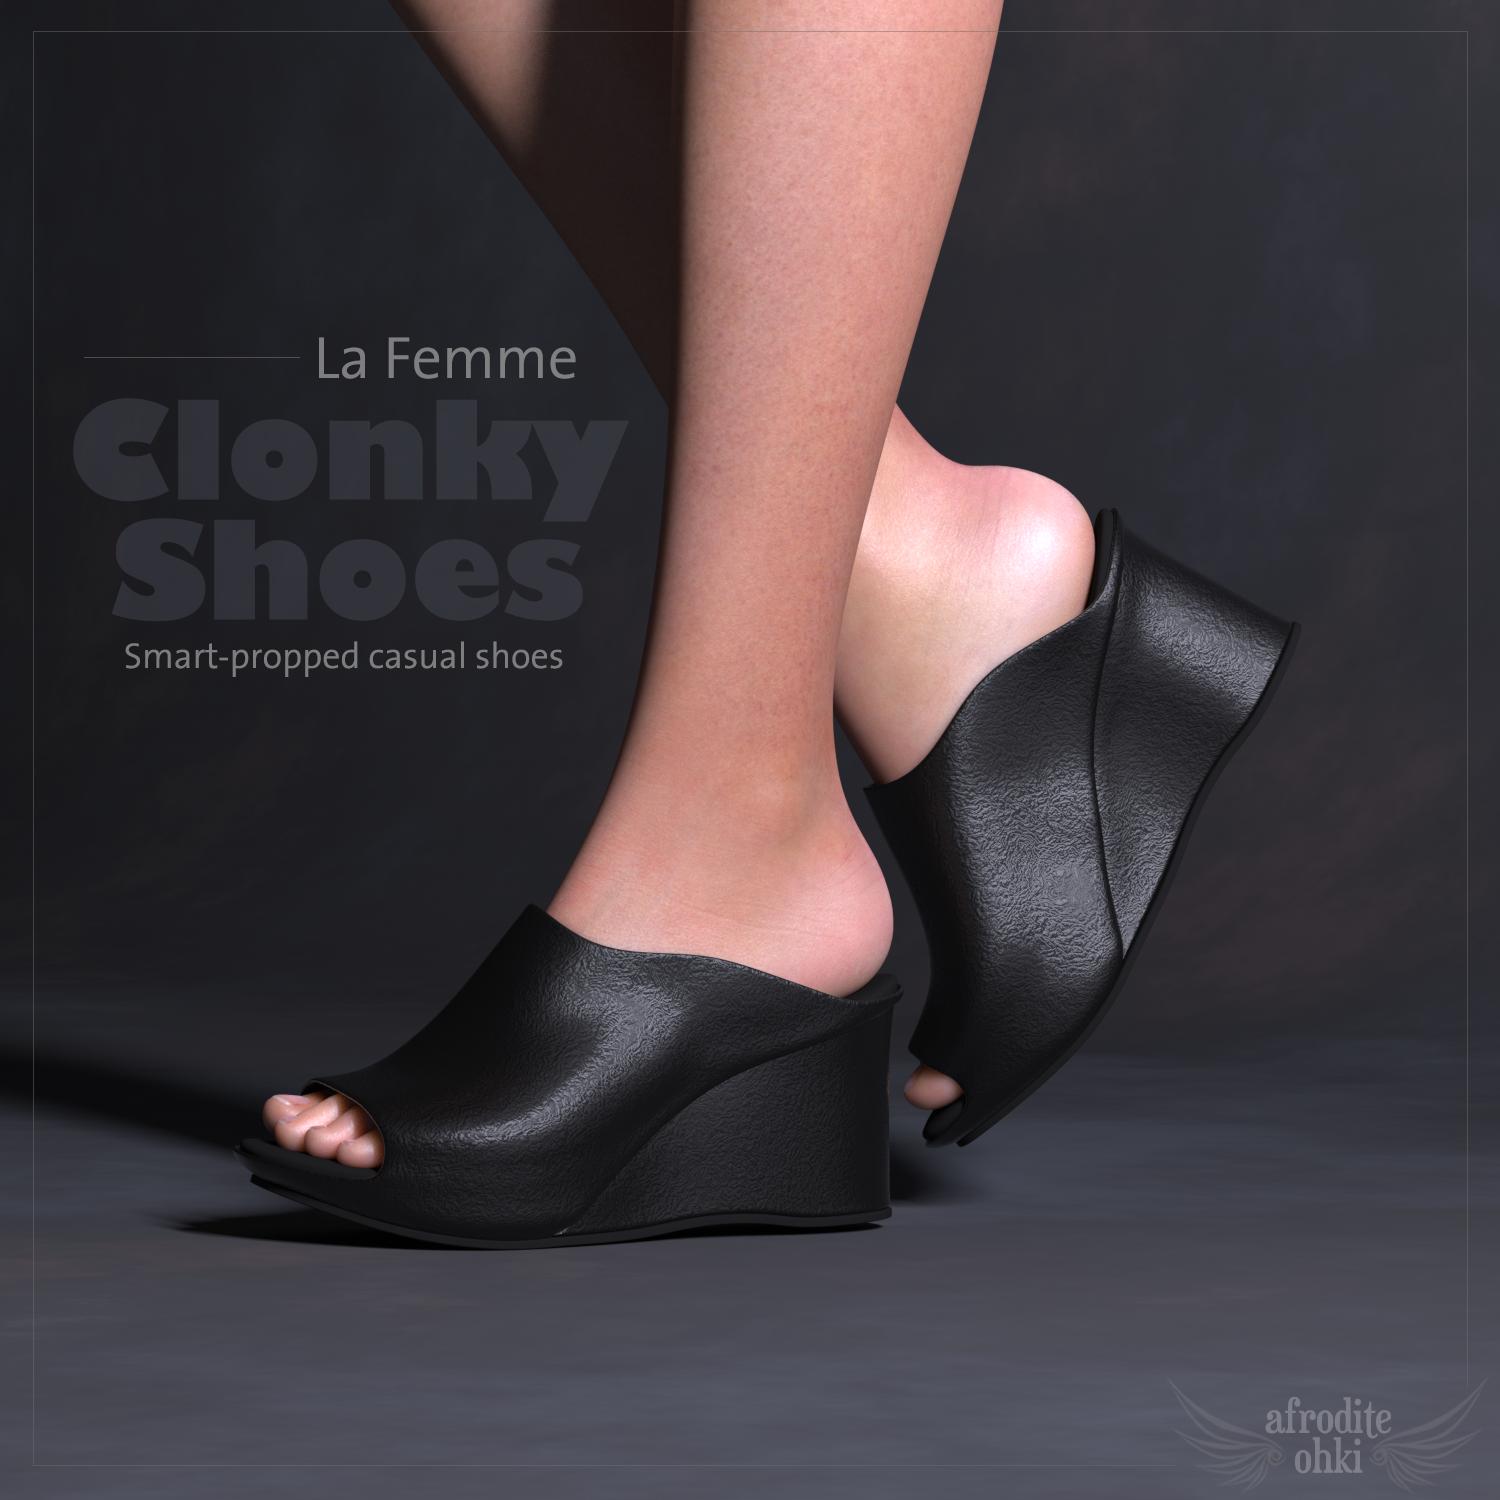 Clonky Shoes for La Femme by Afrodite-Ohki